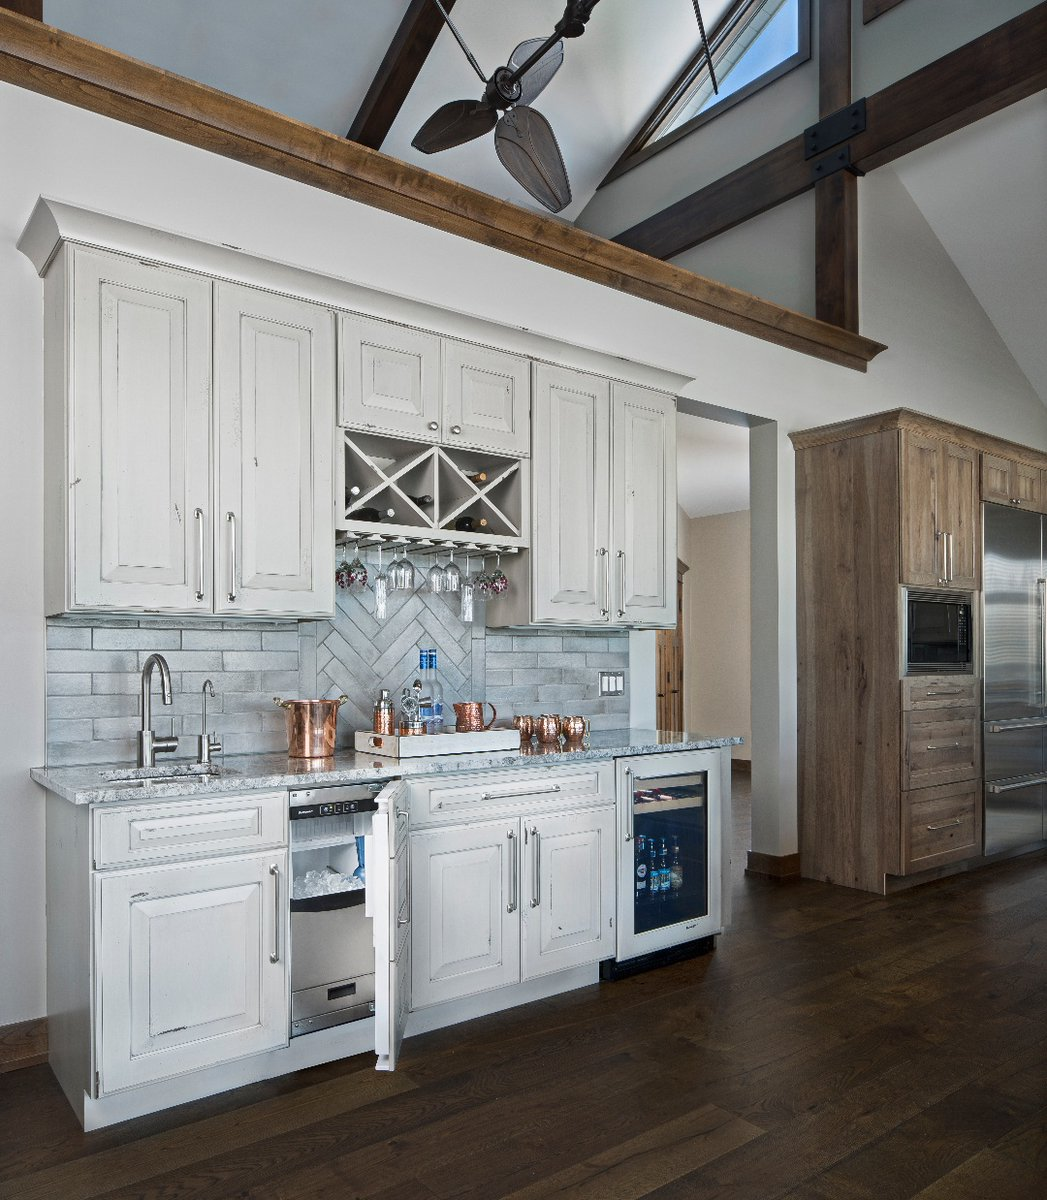 Ksi Kitchen Bath On Twitter Friday Fun With This Butler Pantry Such A Useful Area That Can Double As Coffee Station Or Bar Great For Entertaining With The Built In